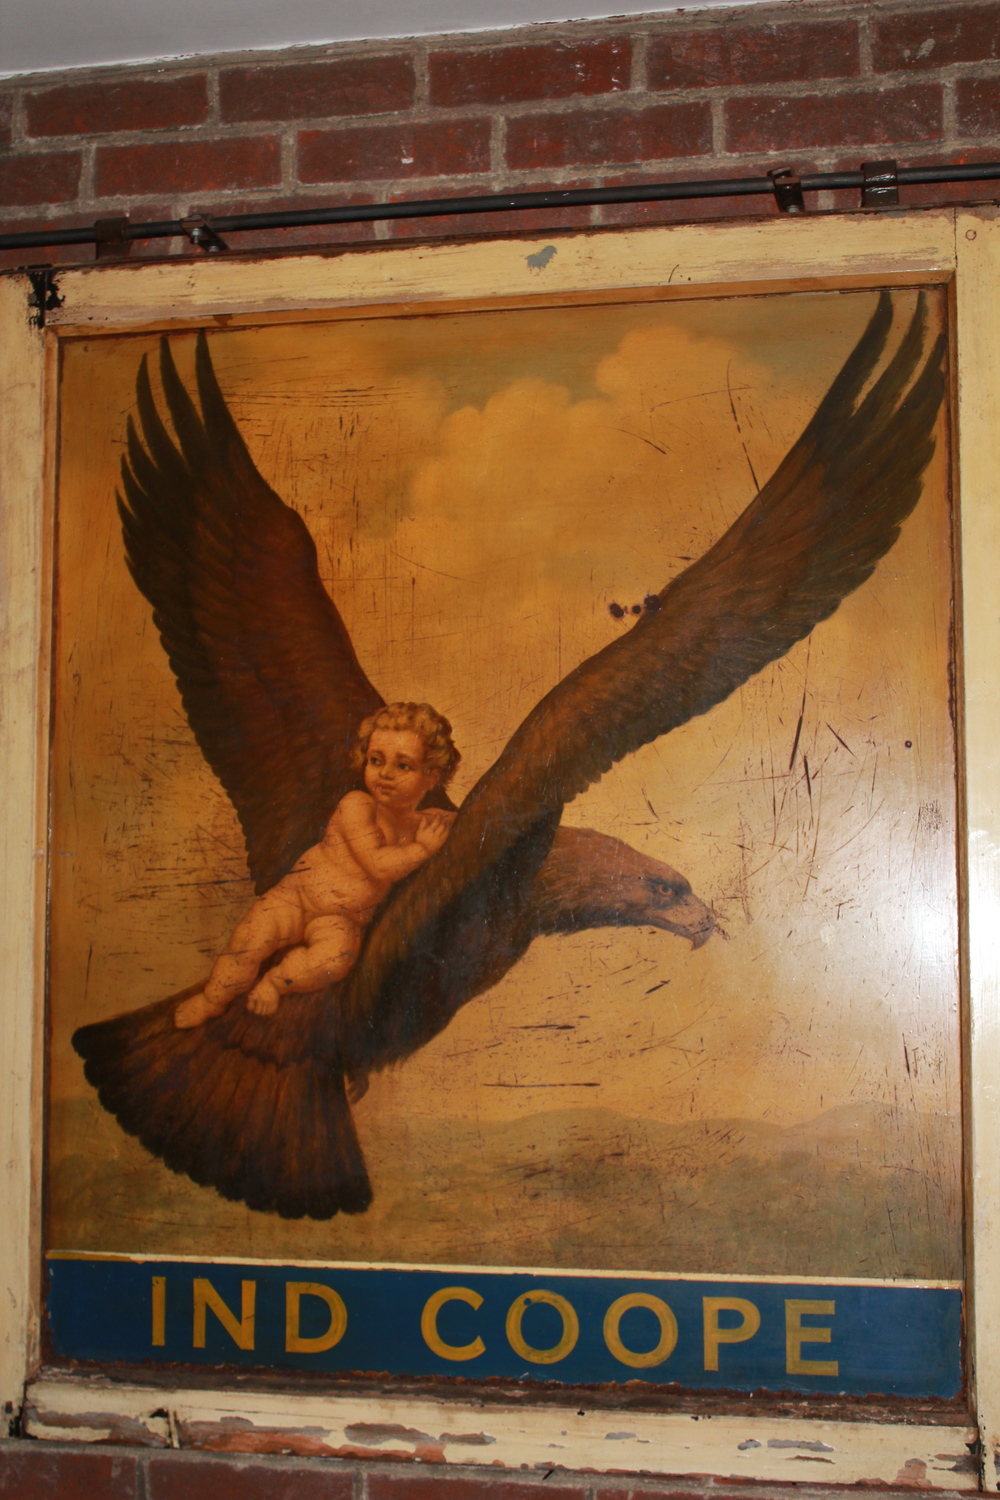 Former Eagle & Child Pub sign, now at The Kilns